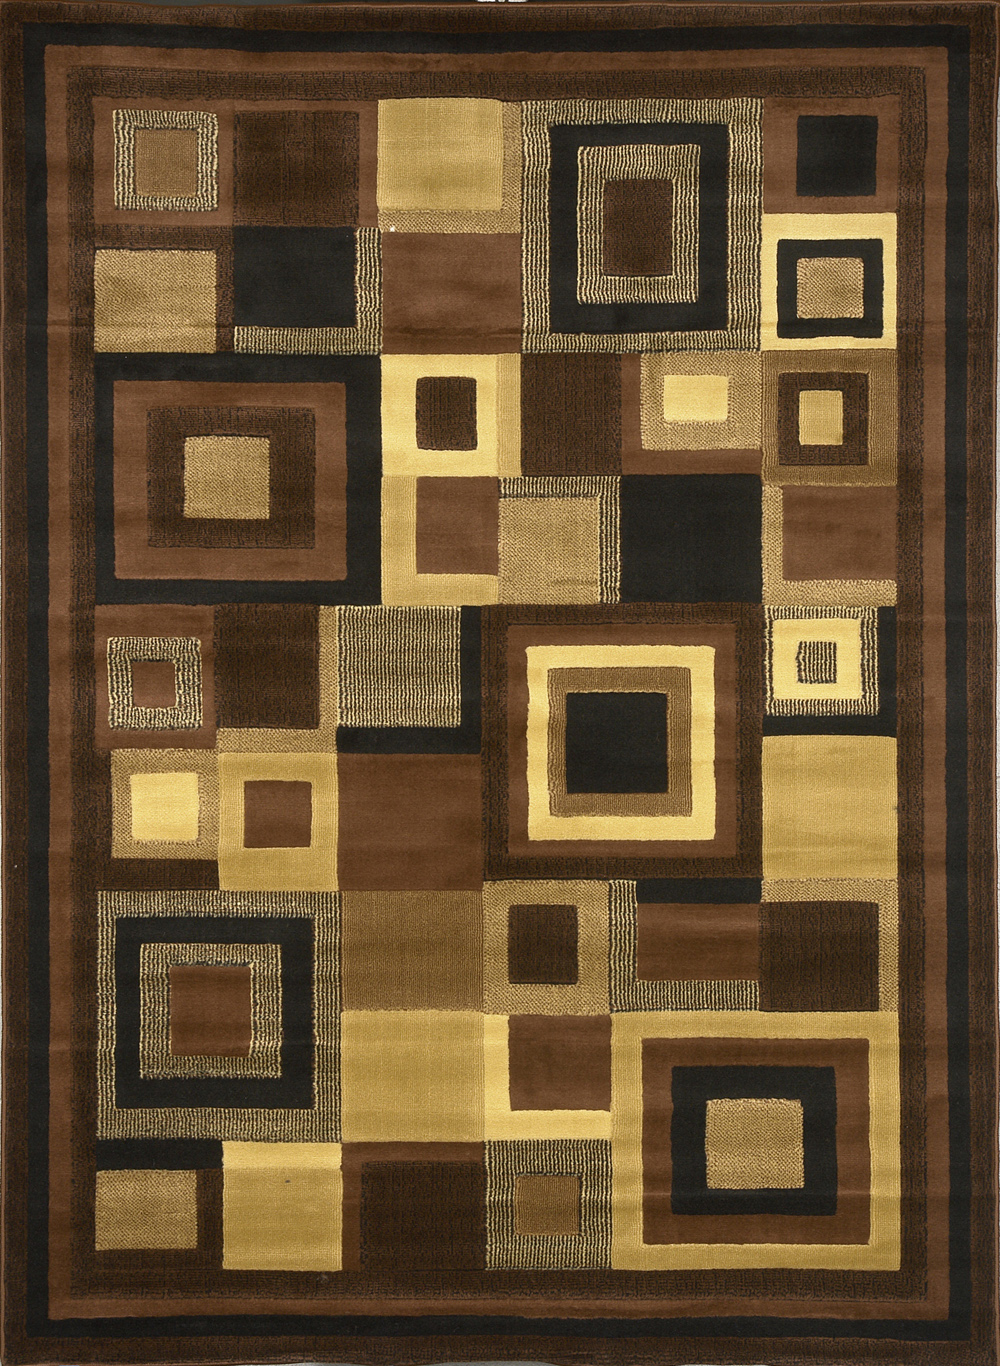 Bedroom 10x10 Size: Squares Blocks Contemporary Brown 8x11 Area Rug New